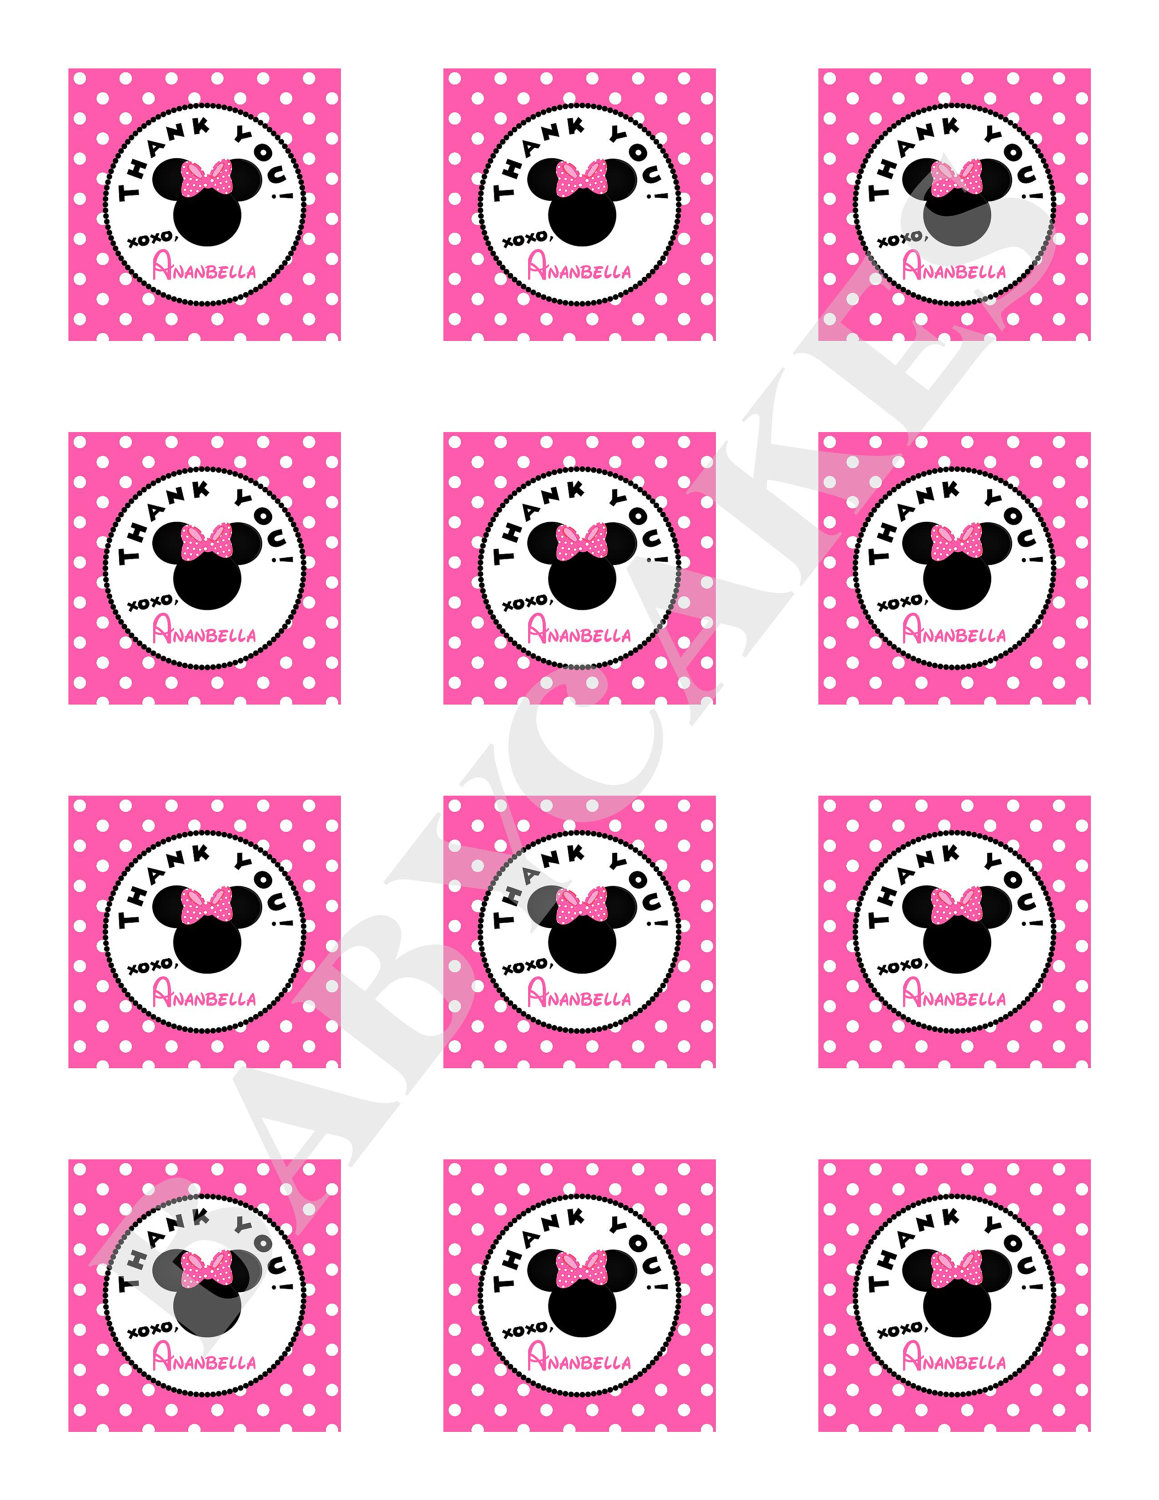 Minnie Mouse Favor Tags DIY Print Your Own by jcbabycakes on Etsy